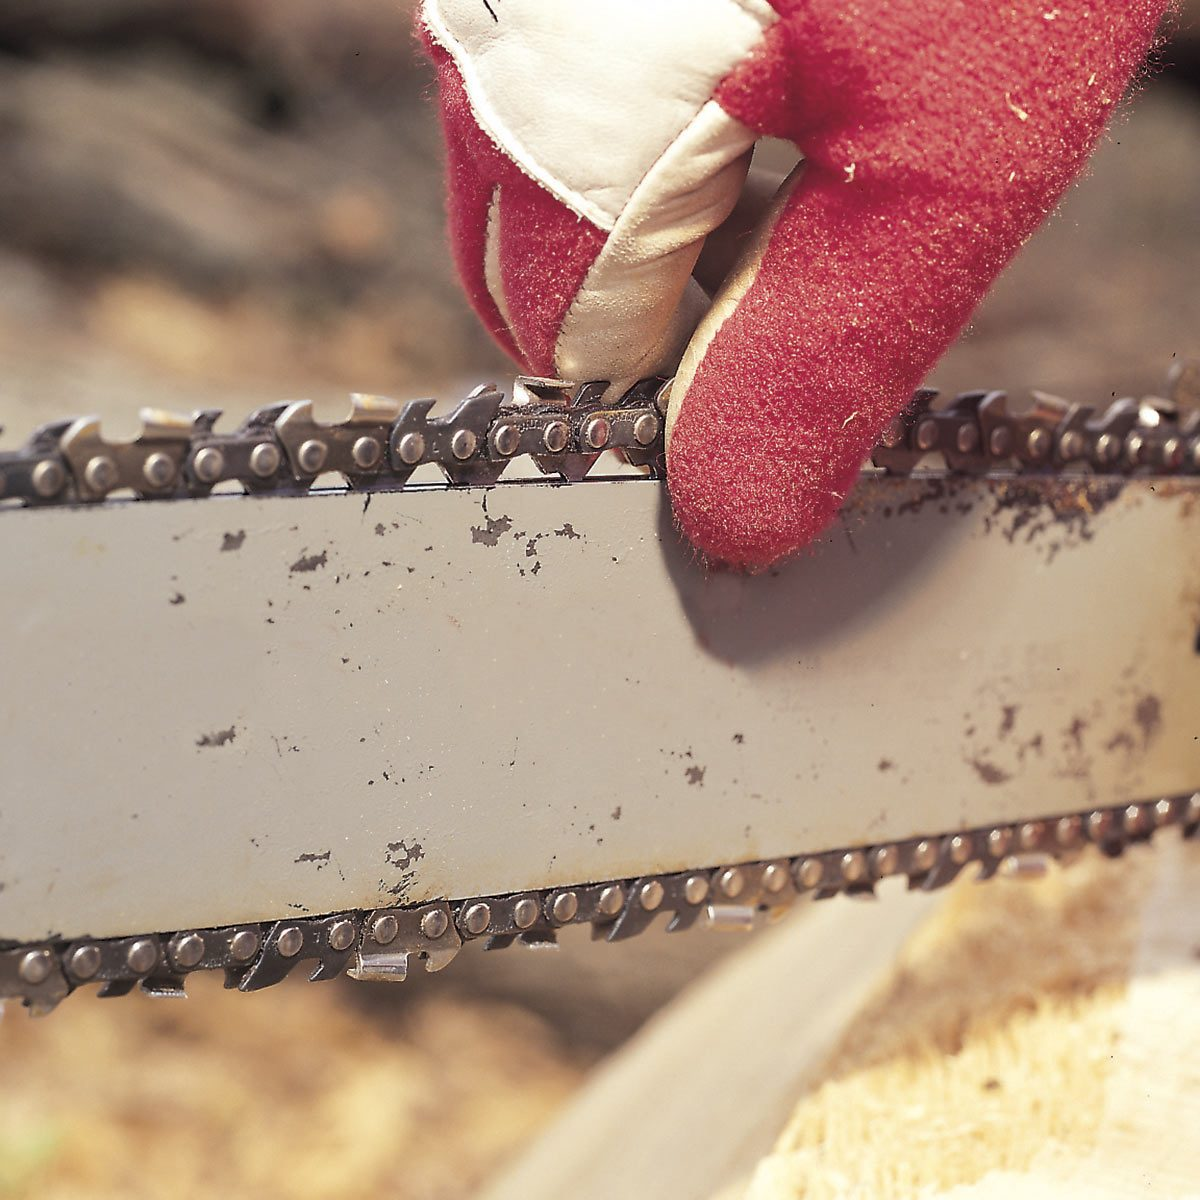 chain saw tension test